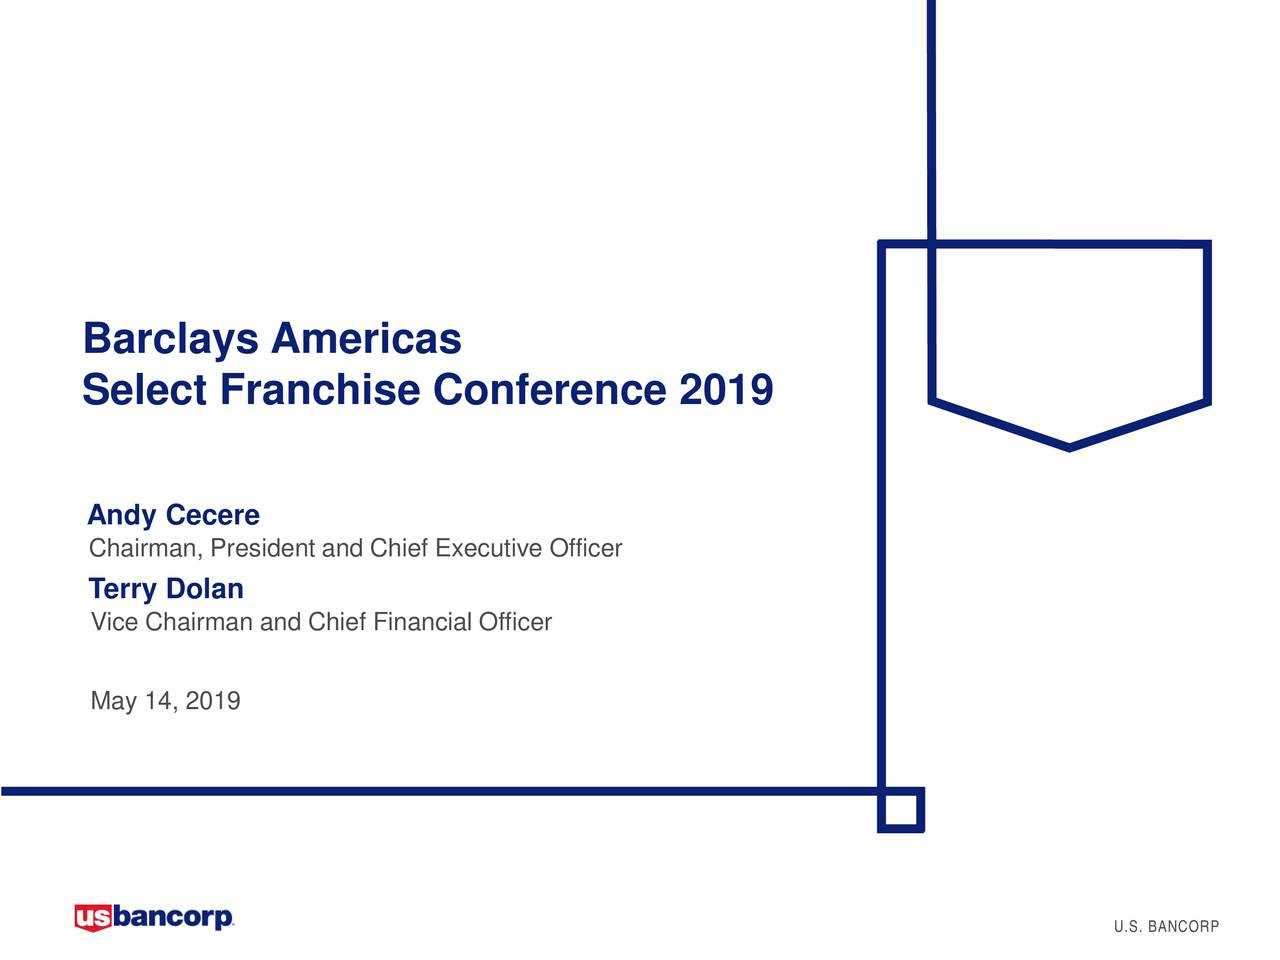 U.S. Bancorp (USB) Presents At 2019 Barclays Americas Select Franchise Conference